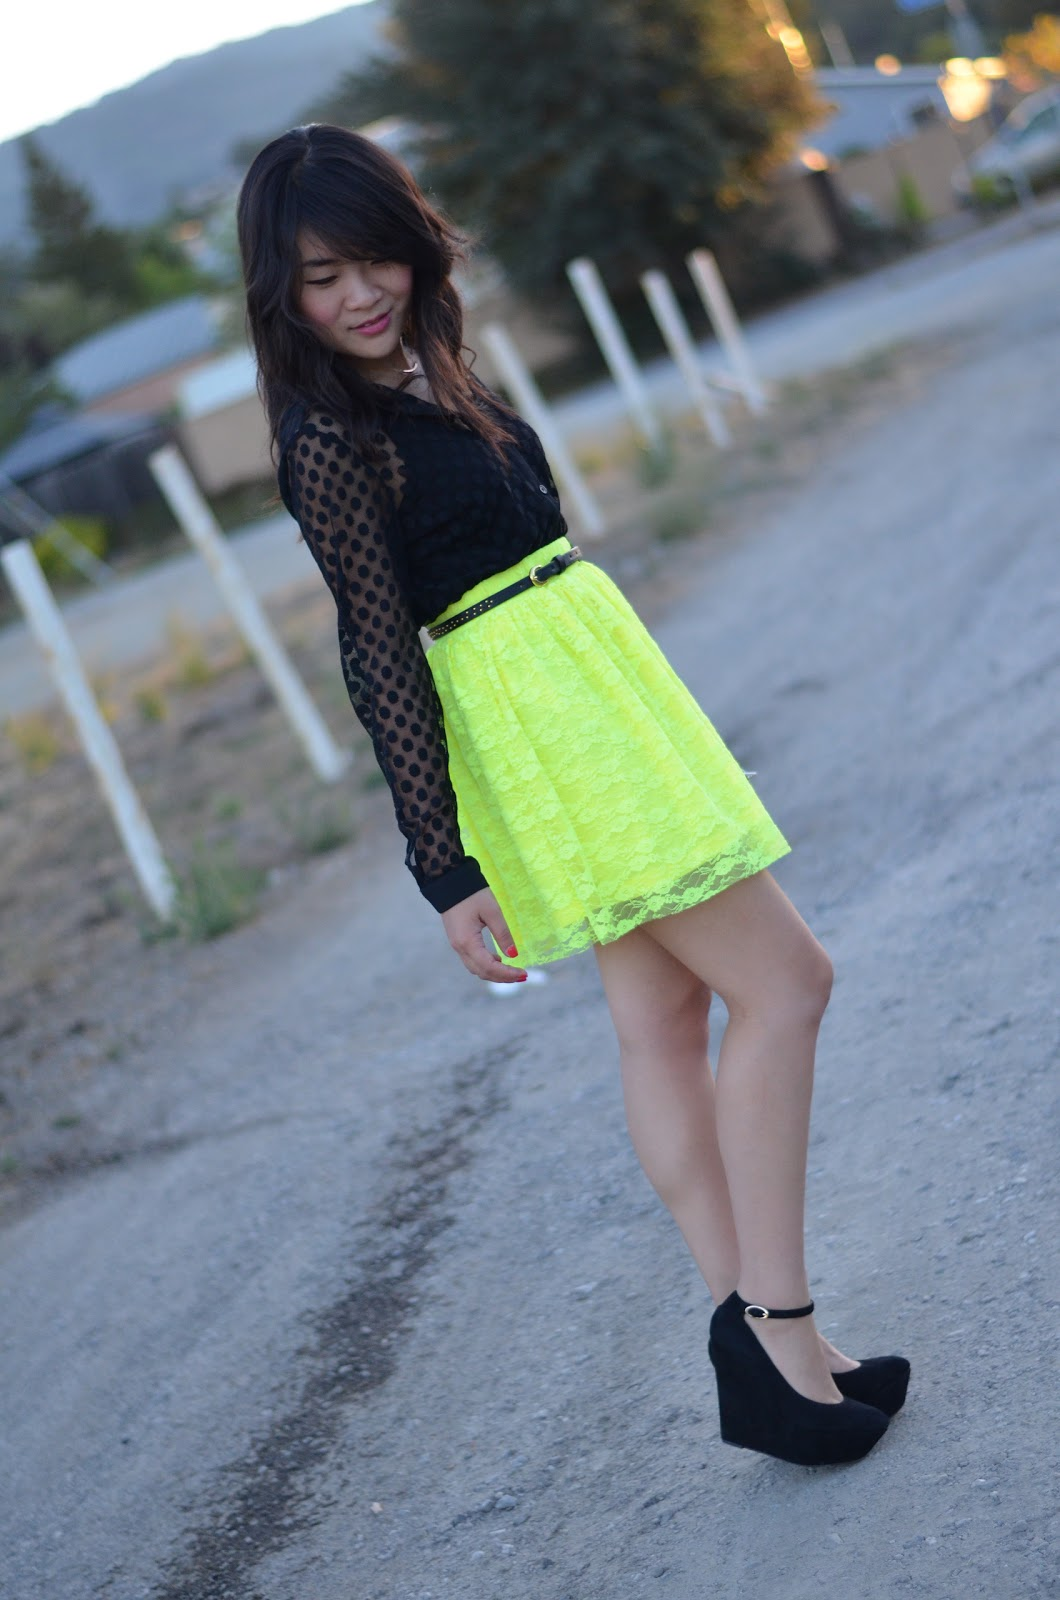 forever 21 black mesh dot blouse, forever 21 mesh dot blouse, forever 21 black sheer dot blouse, forever 21 sheer dot blouse, urban outfitters neon yellow lace skirt, urban outfitters neon yellow skirt, pins and needles neon yellow lace skirt, pins and needles neon skirt, sam edelman quinn